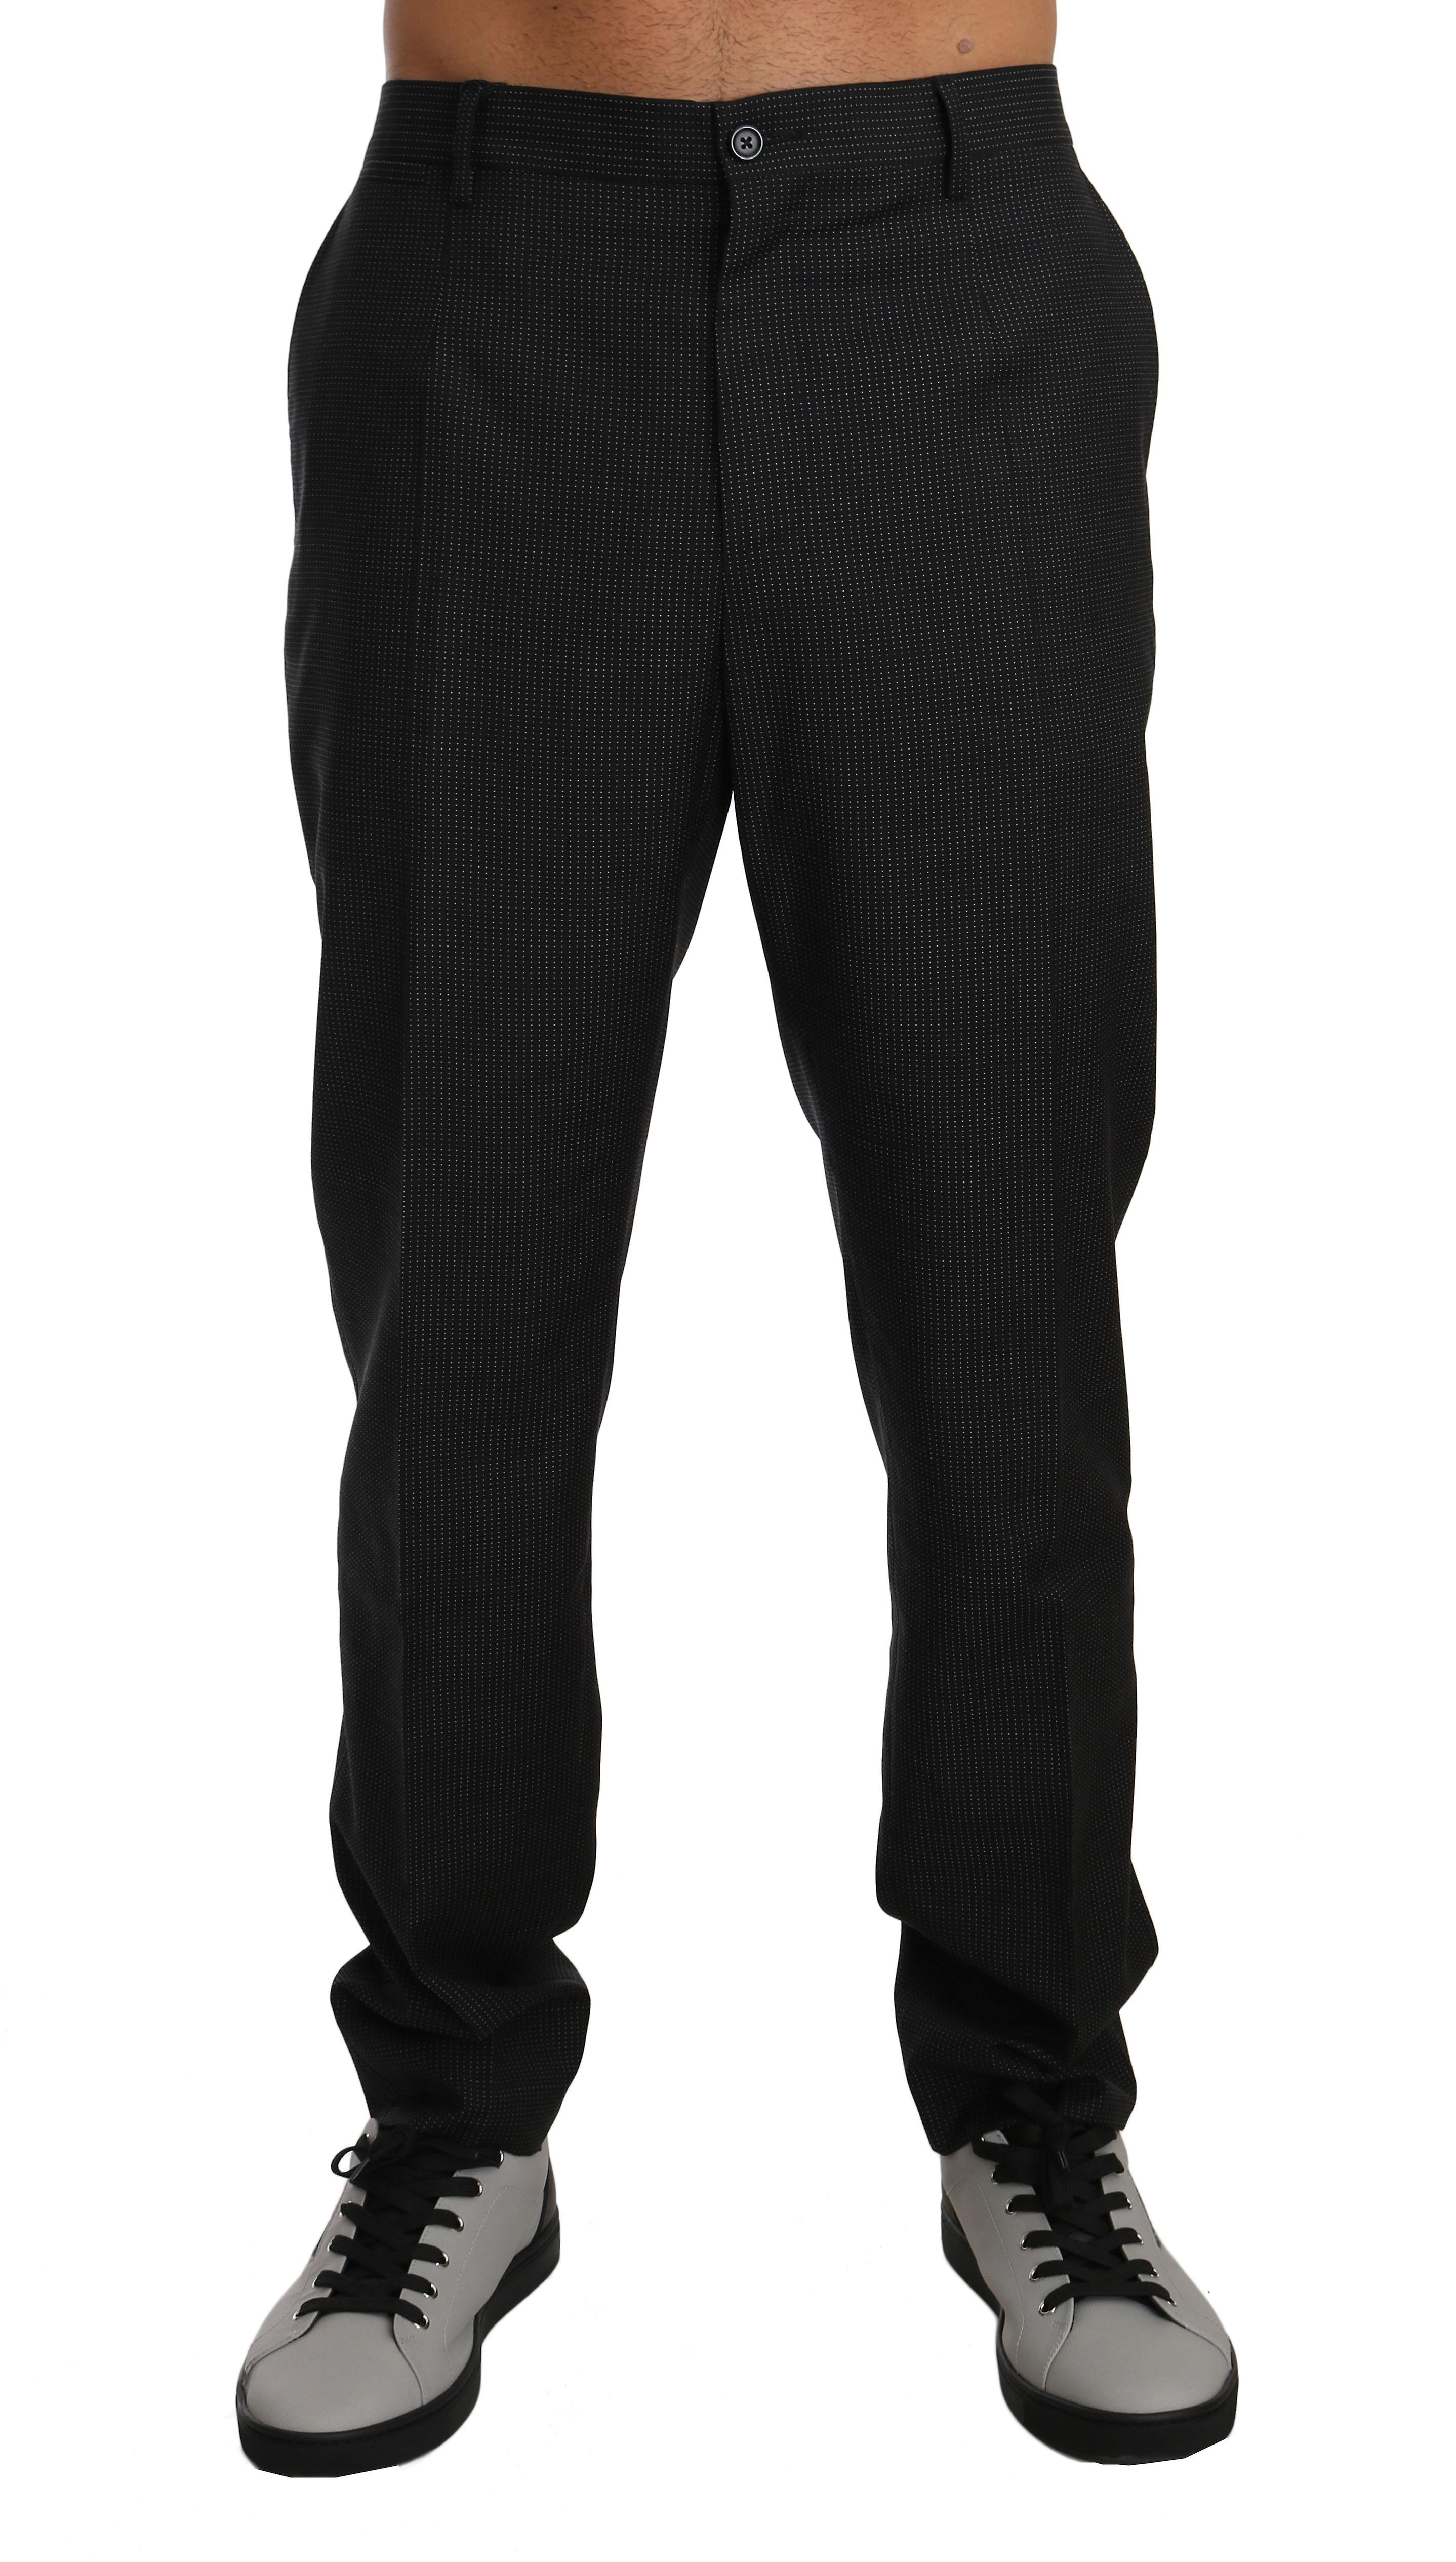 Gray Patterned Wool Formal Trousers Pants